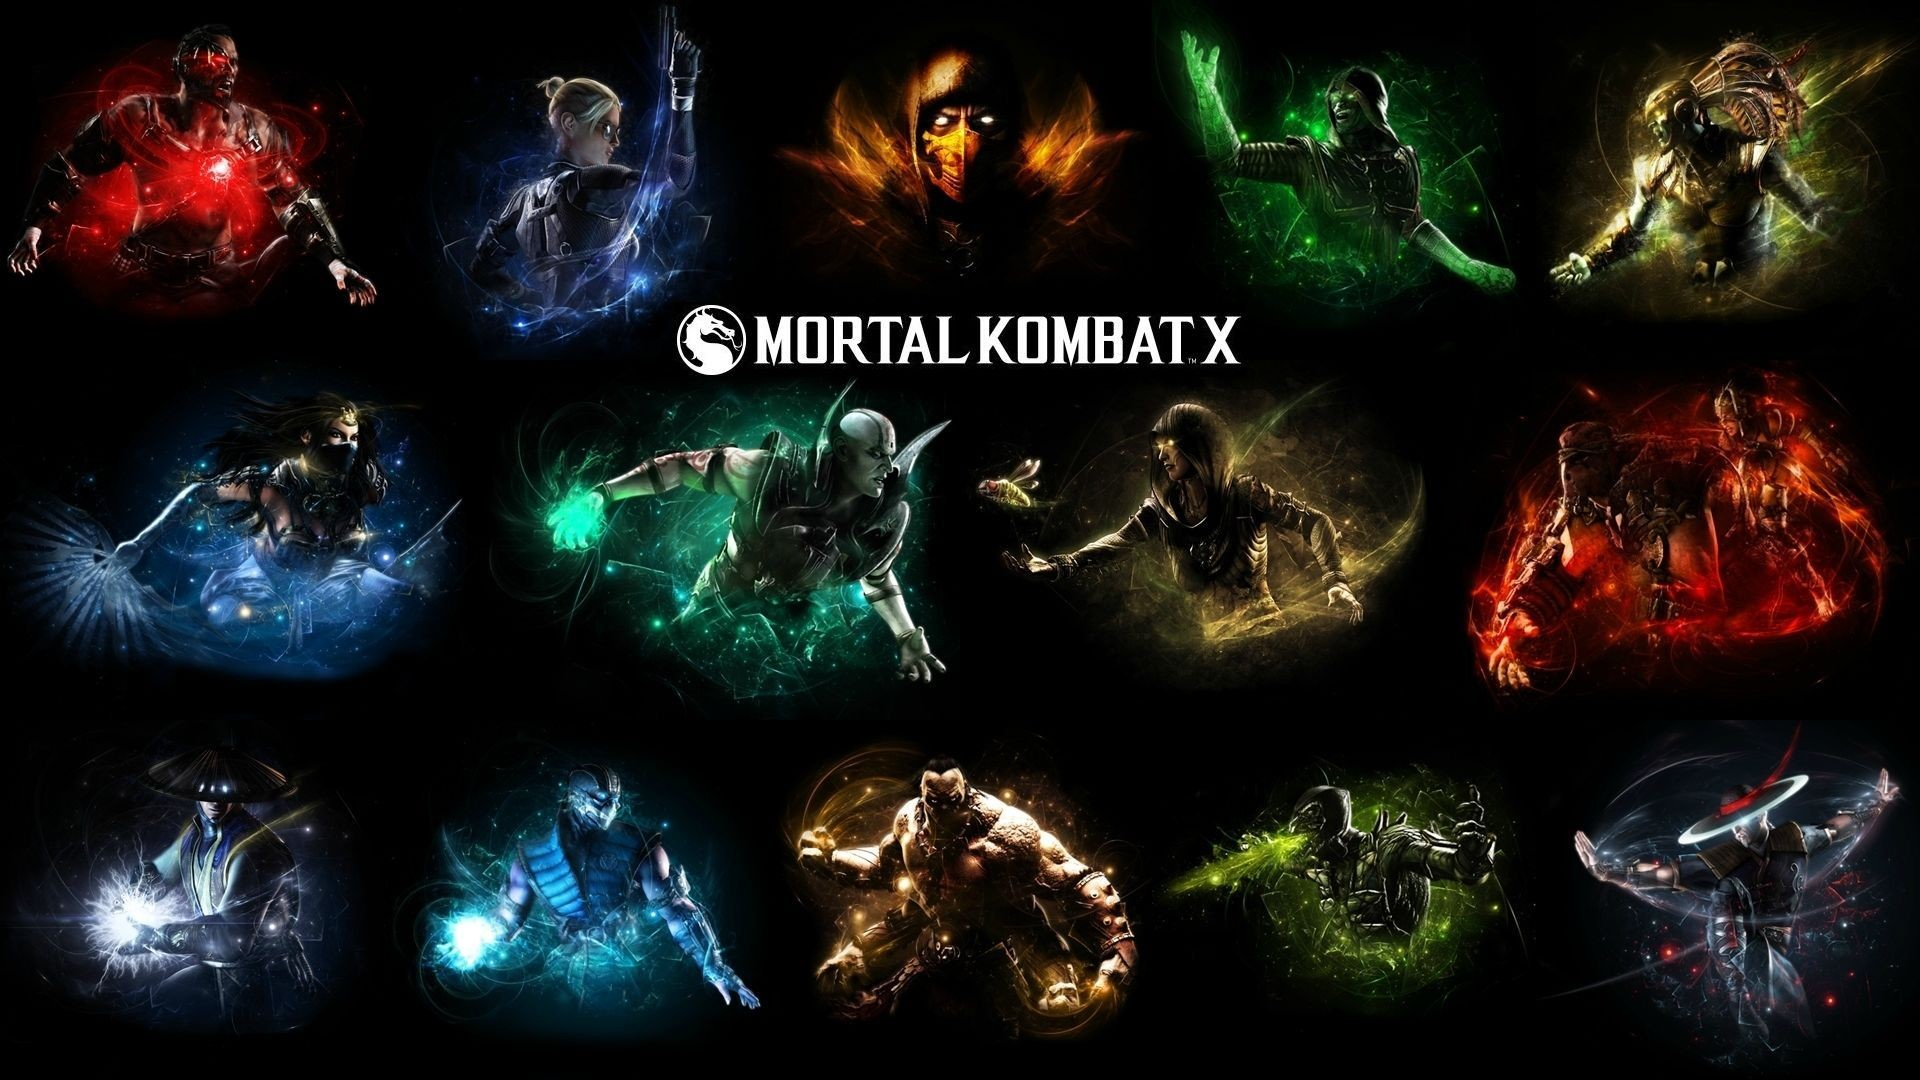 1920x1080 Mortal Kombat Logo HD Wallpaper 32 - 1920 X 1080